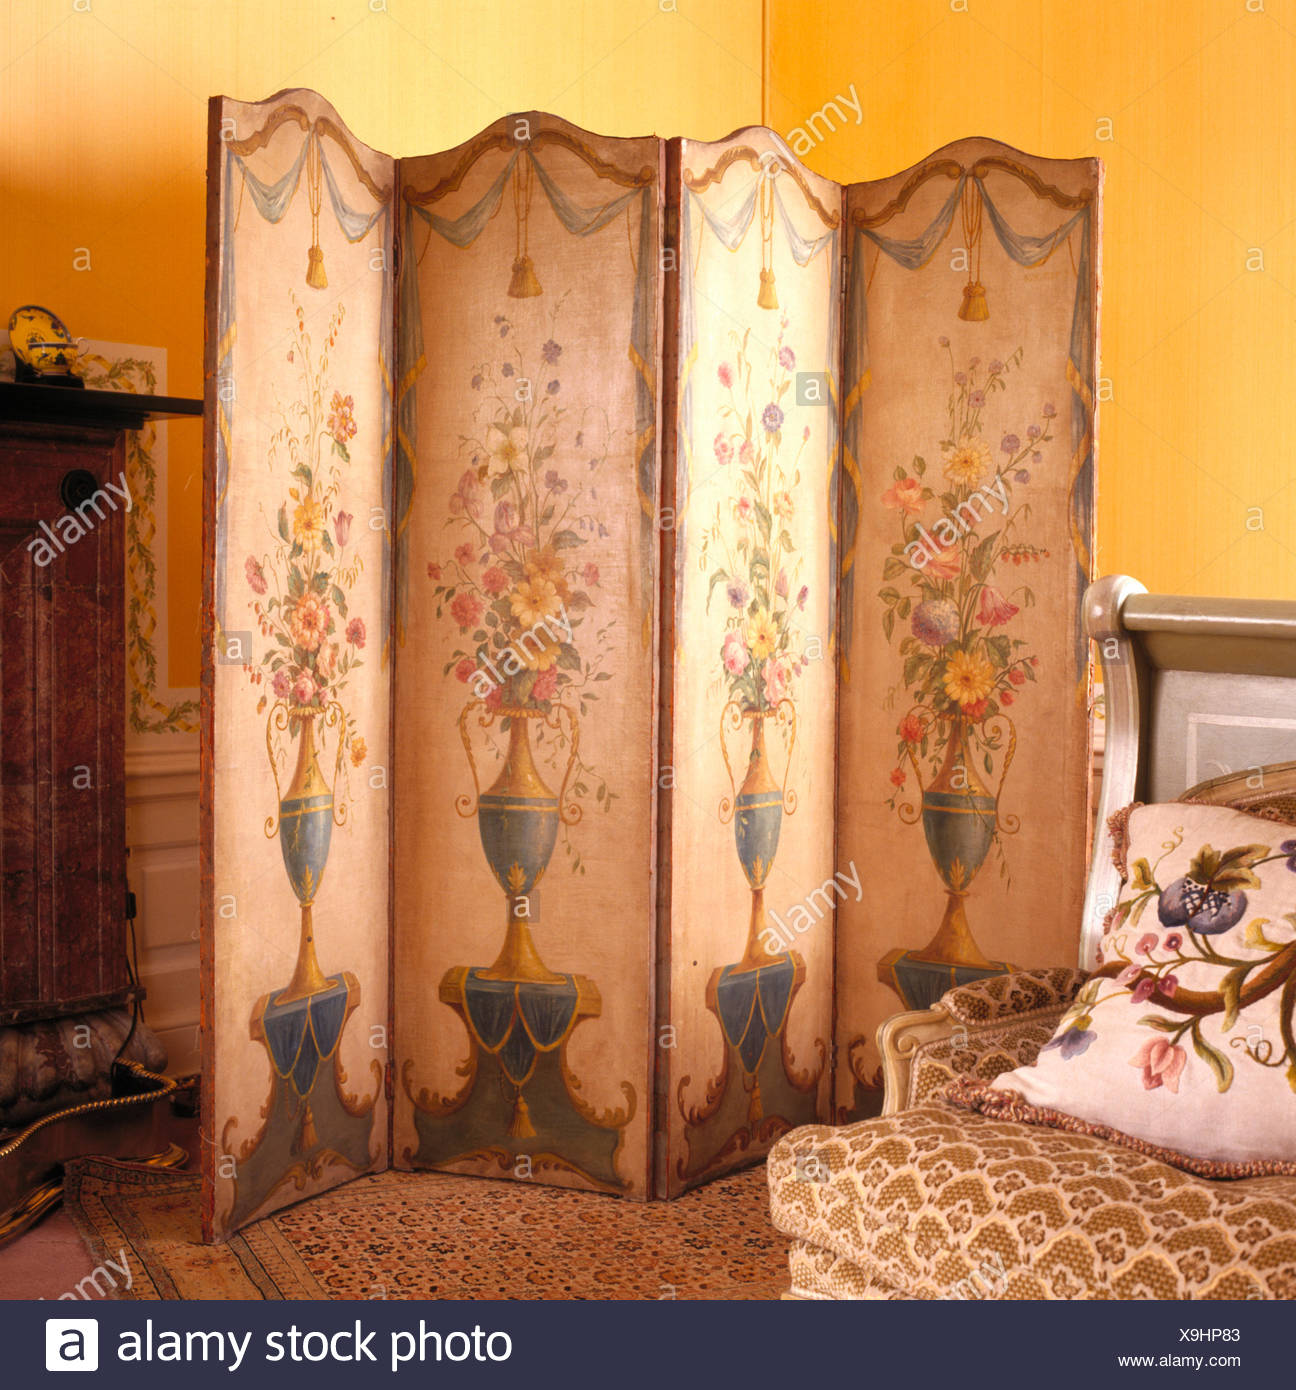 Painted antique folding screen in country house bedroom Stock Photo